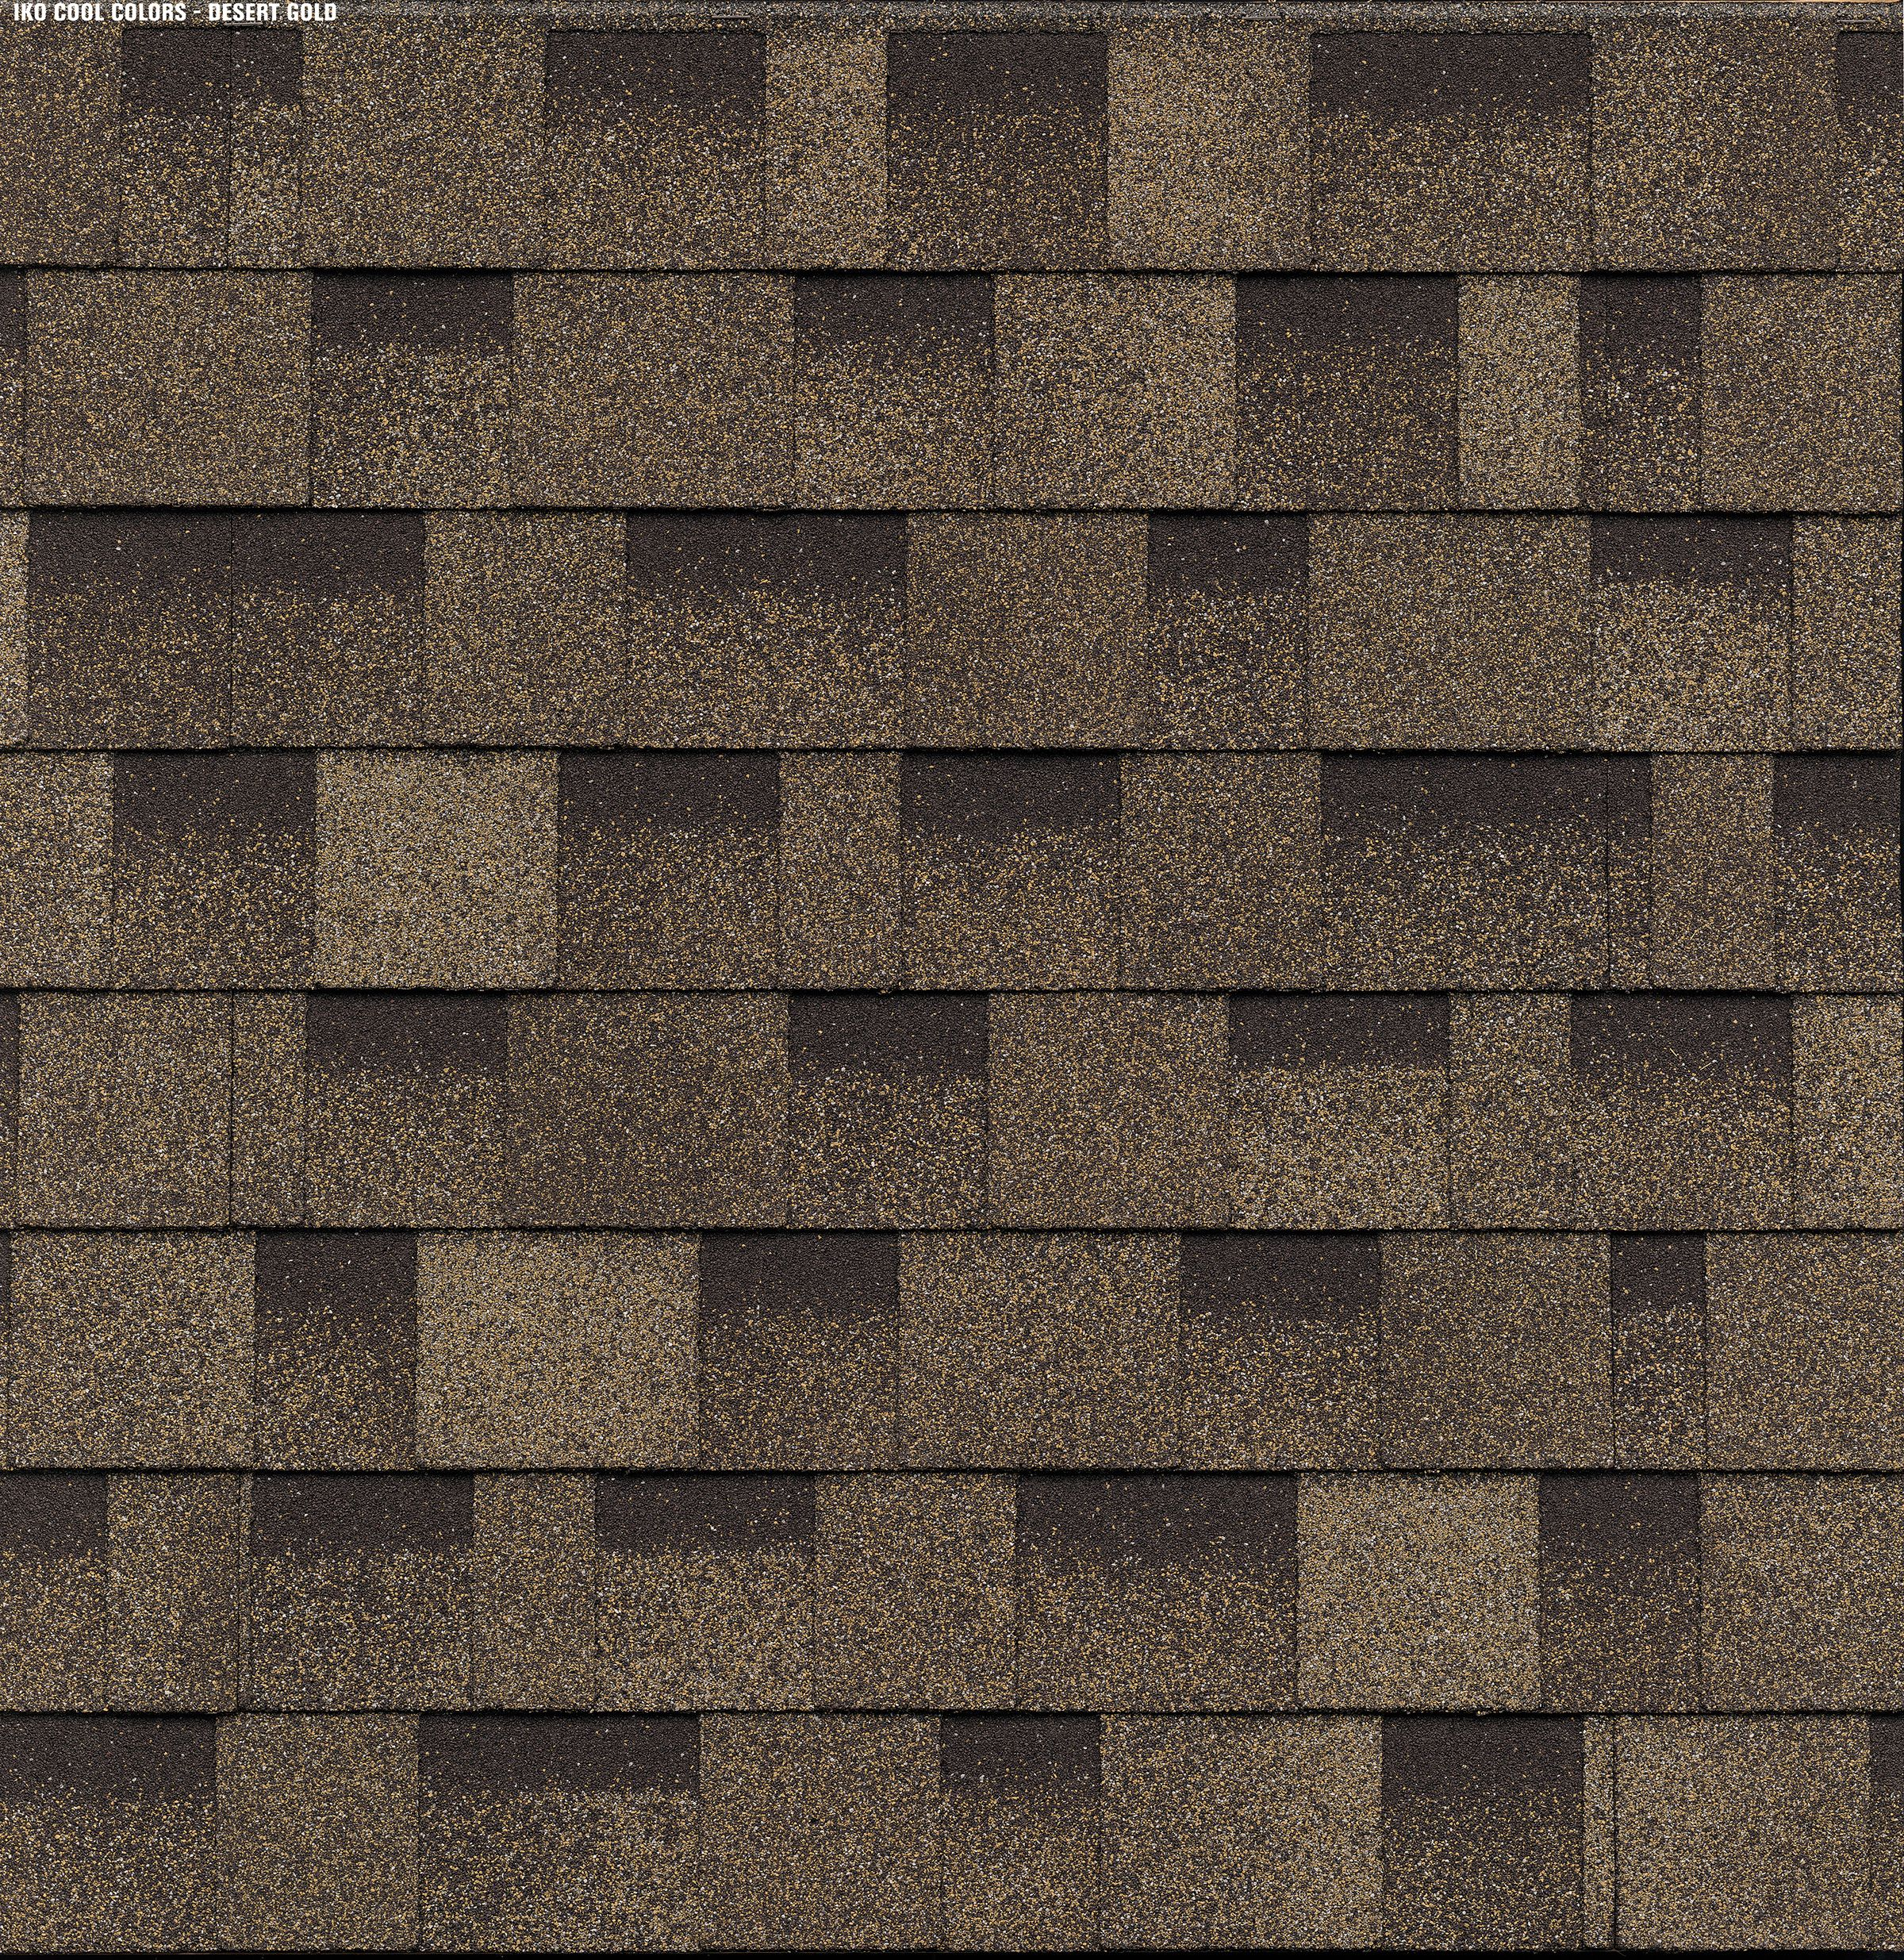 Iko Cambridge Cool Color Desert Gold Swatch In 2020 Shingling Cool Roof Residential Roofing Shingles